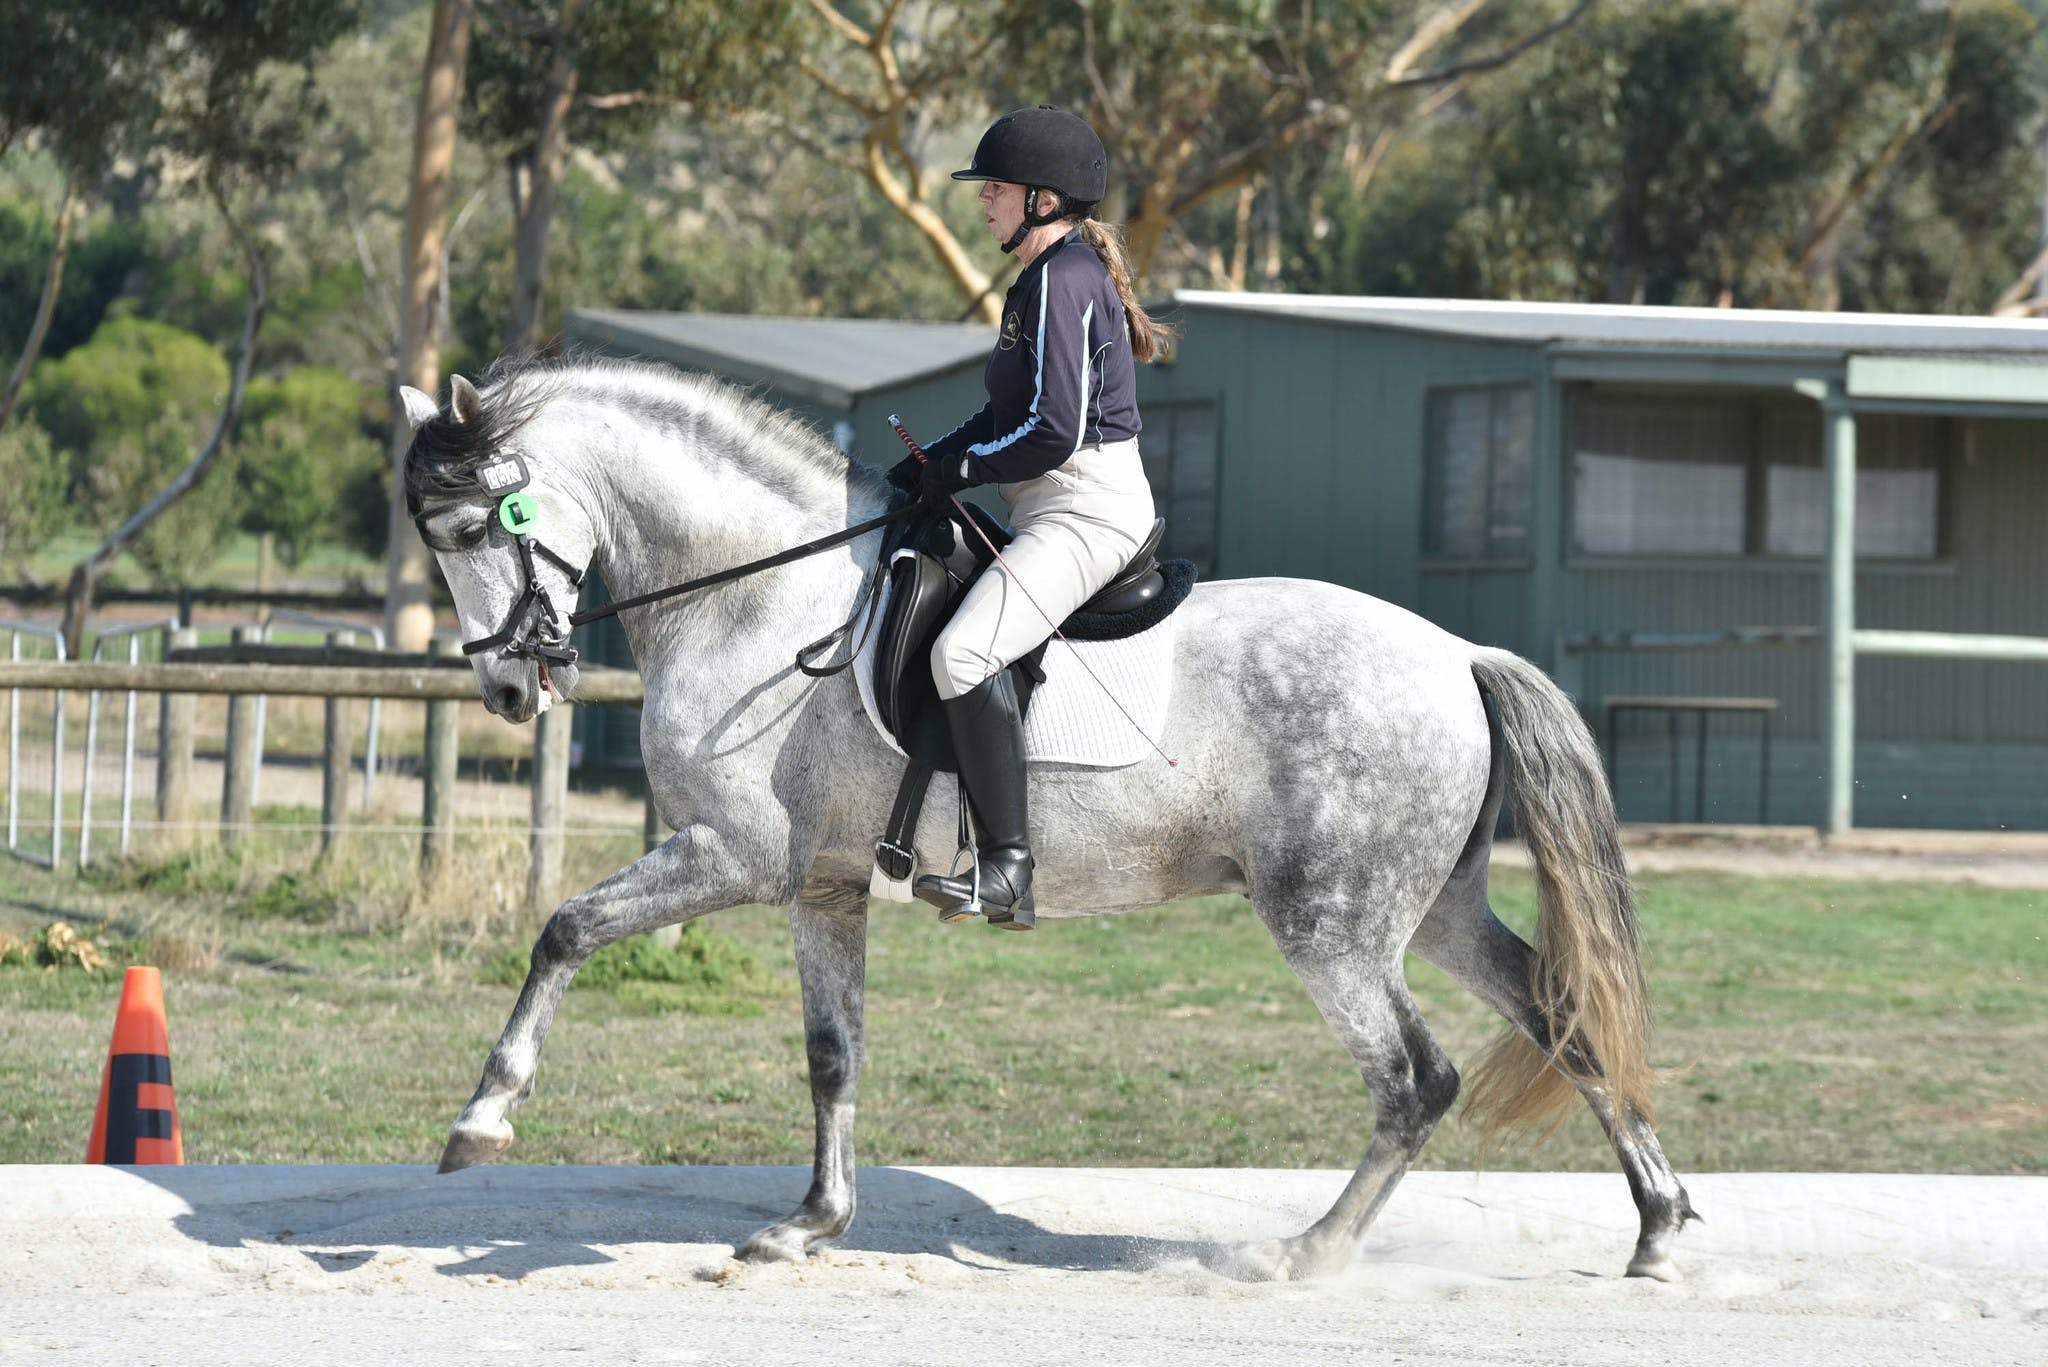 Mustad Saddlery Geelong Mid week Dressage | Mane Memories Photography